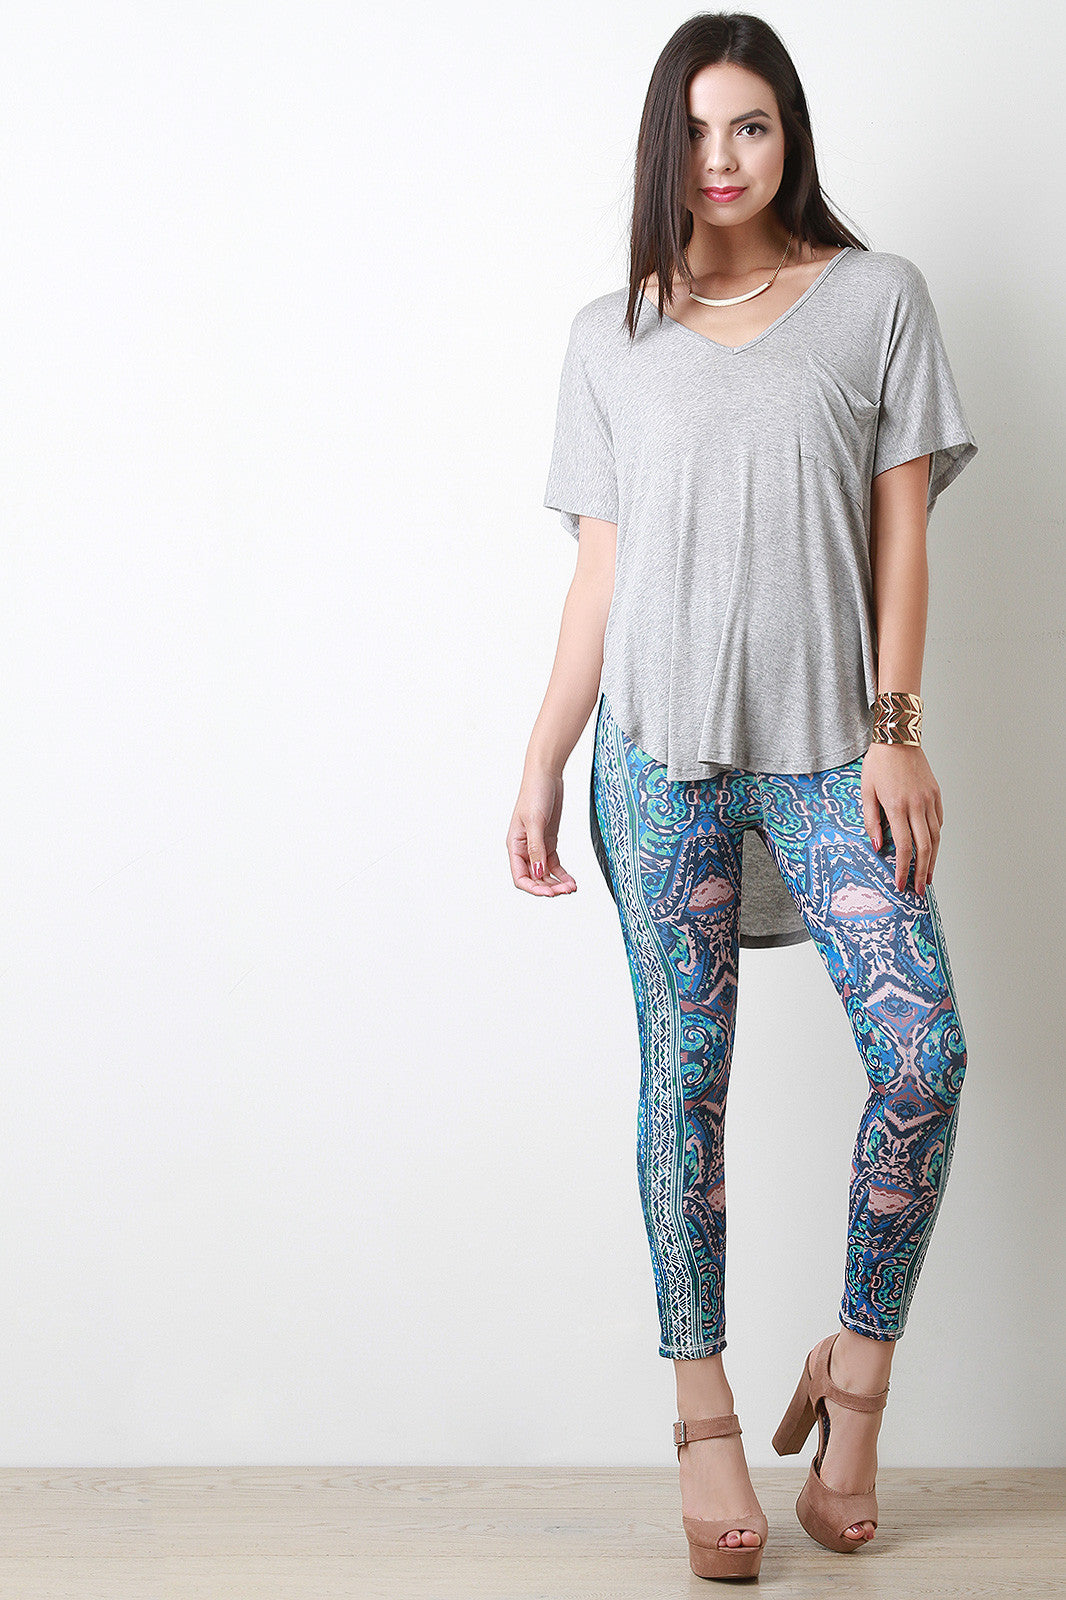 Shop Tribal Inkblot Leggings - Thick 'N' Curvy Shop - 1